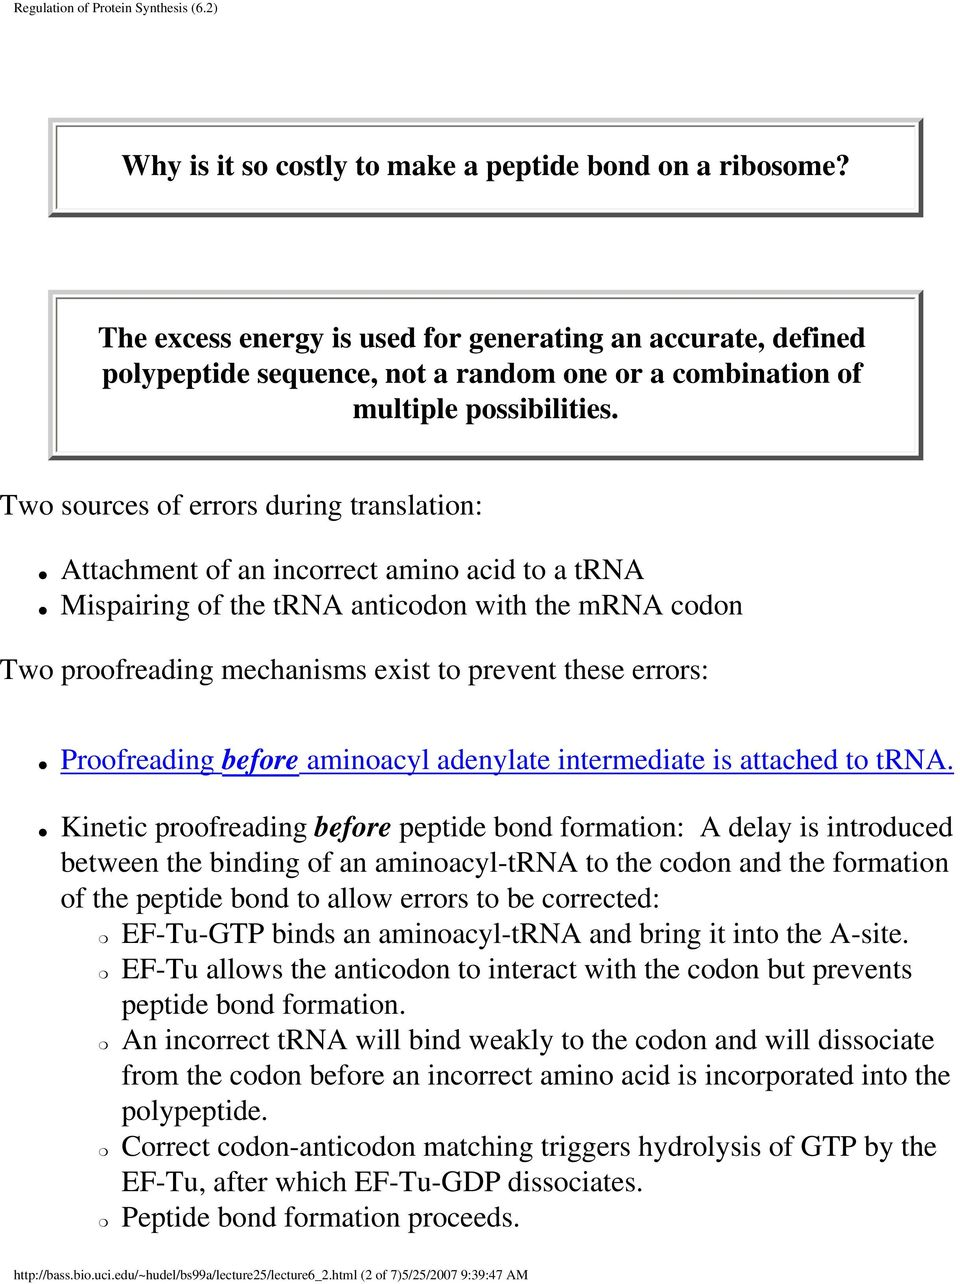 Two sources of errors during translation: Attachment of an incorrect amino acid to a trna Mispairing of the trna anticodon with the mrna codon Two proofreading mechanisms exist to prevent these